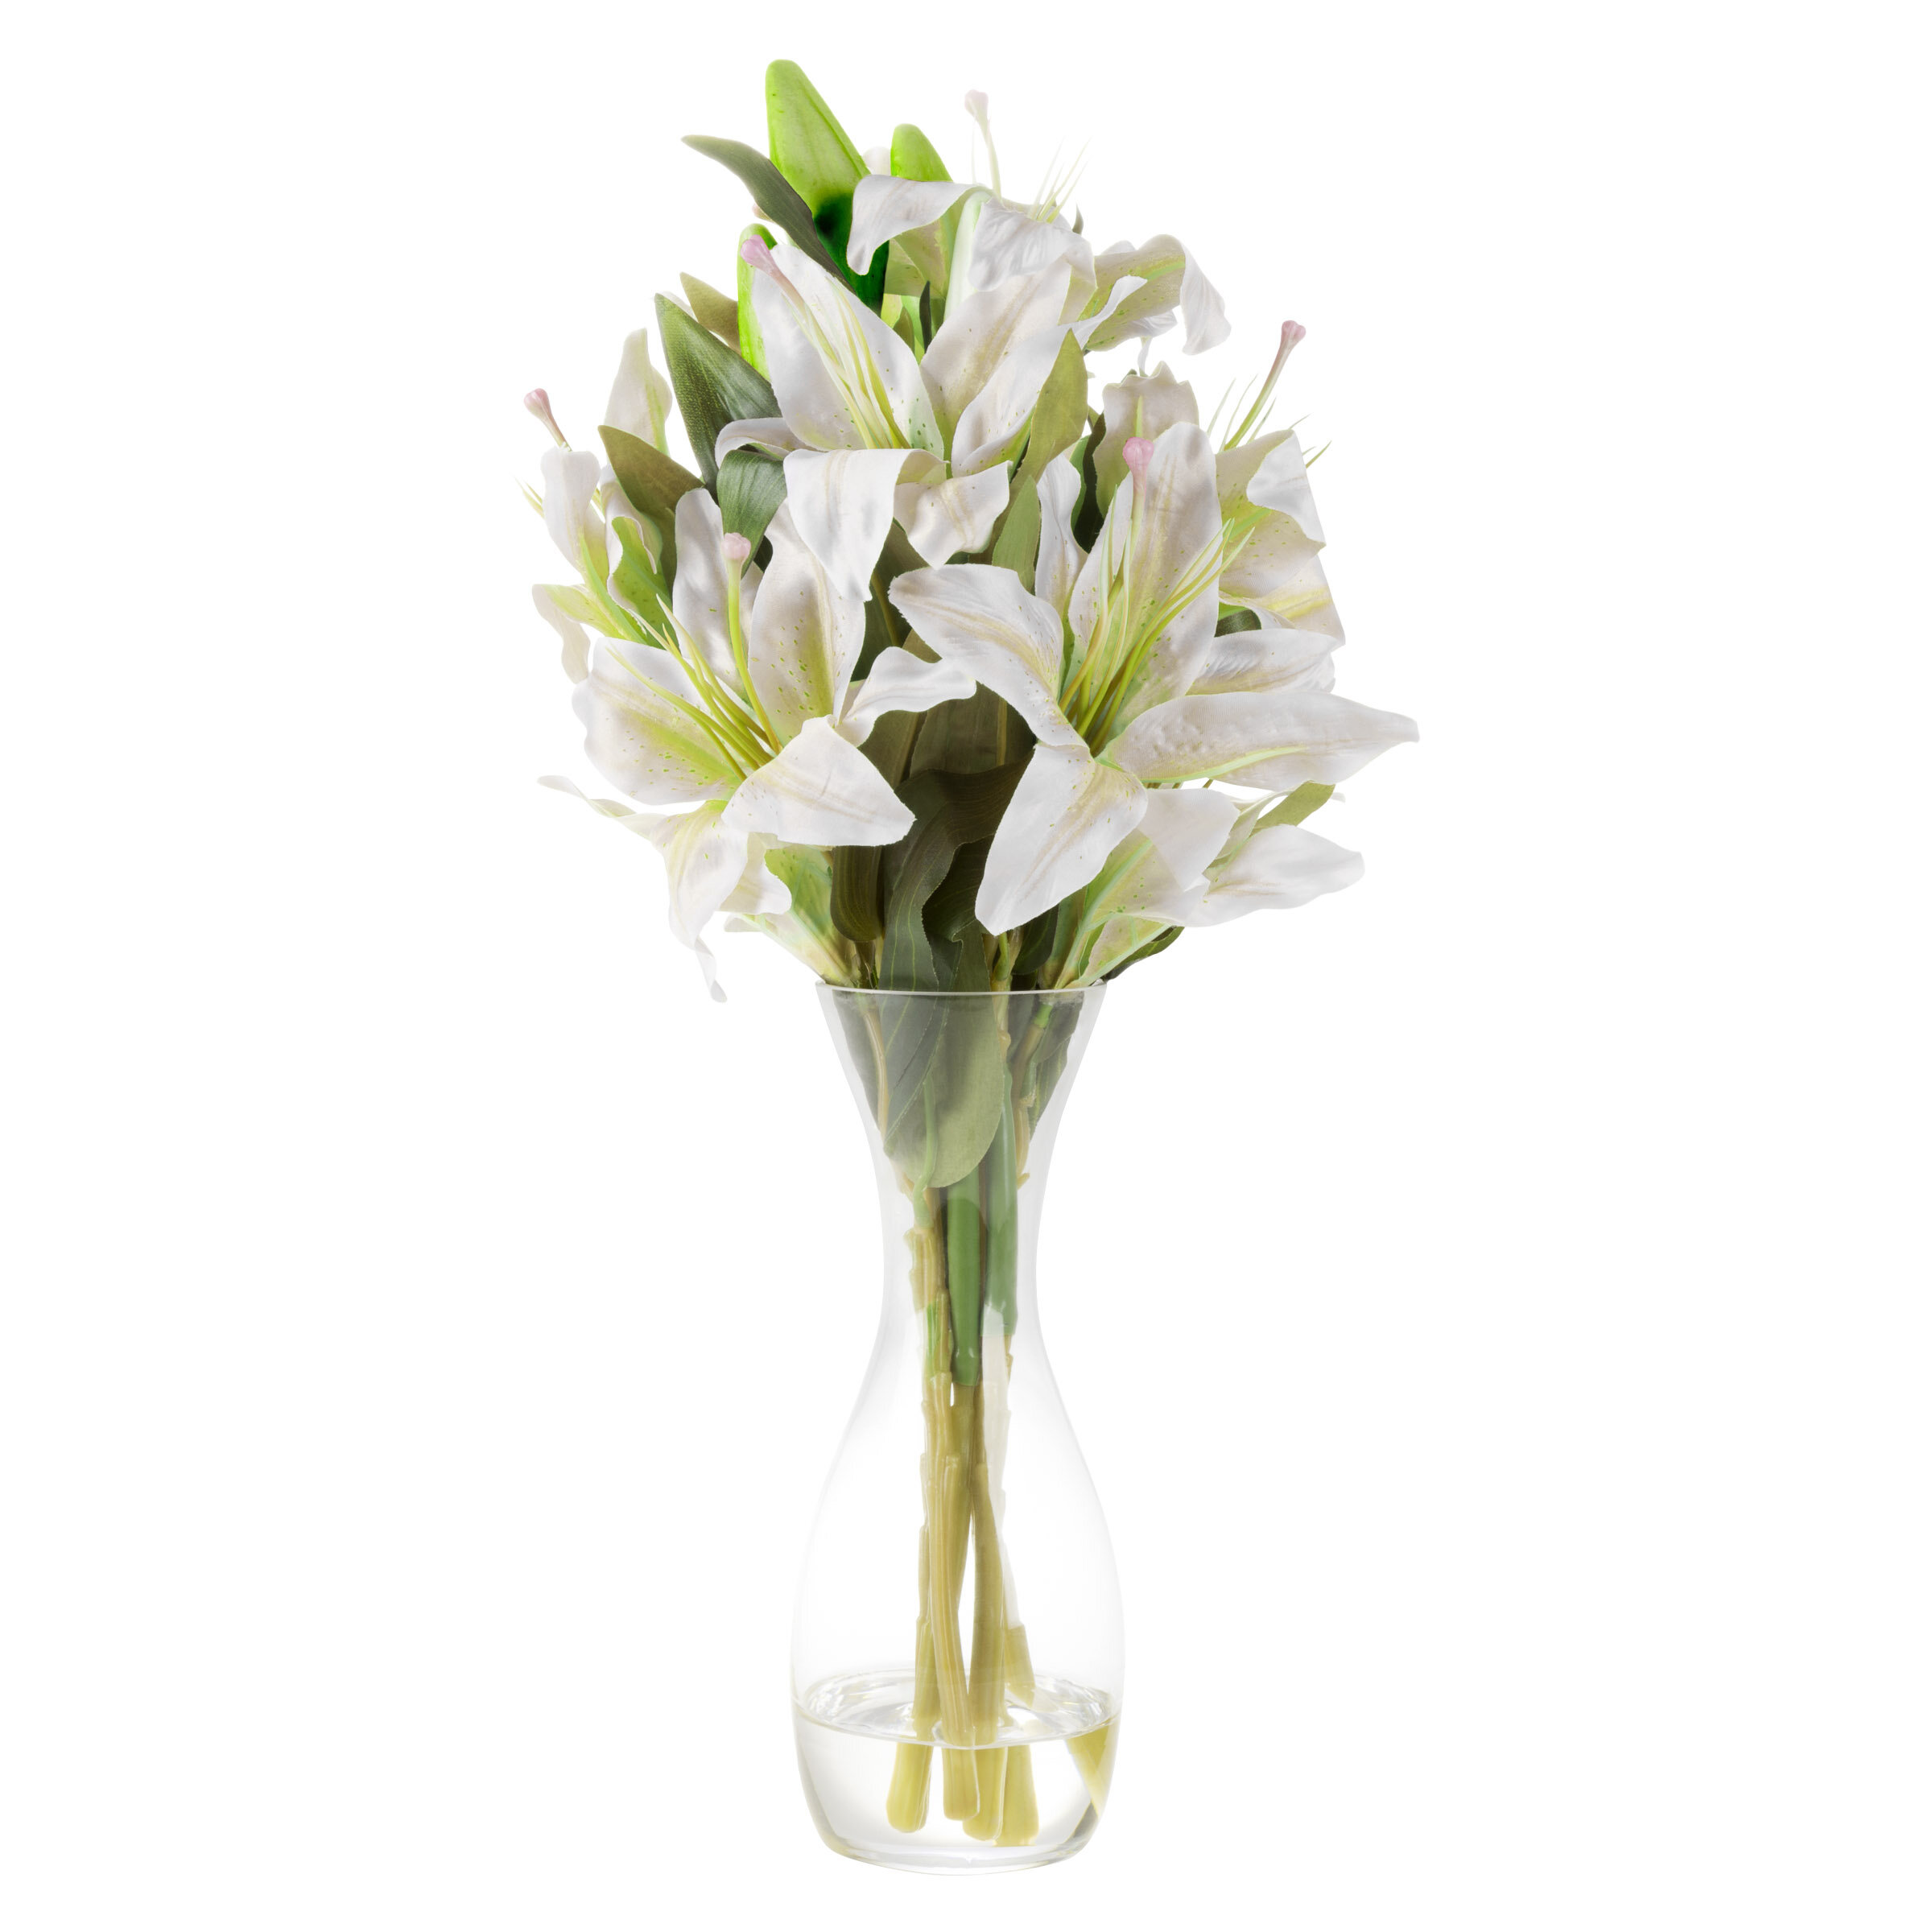 225 & Tall Lily Floral Arrangement in Glass Vase